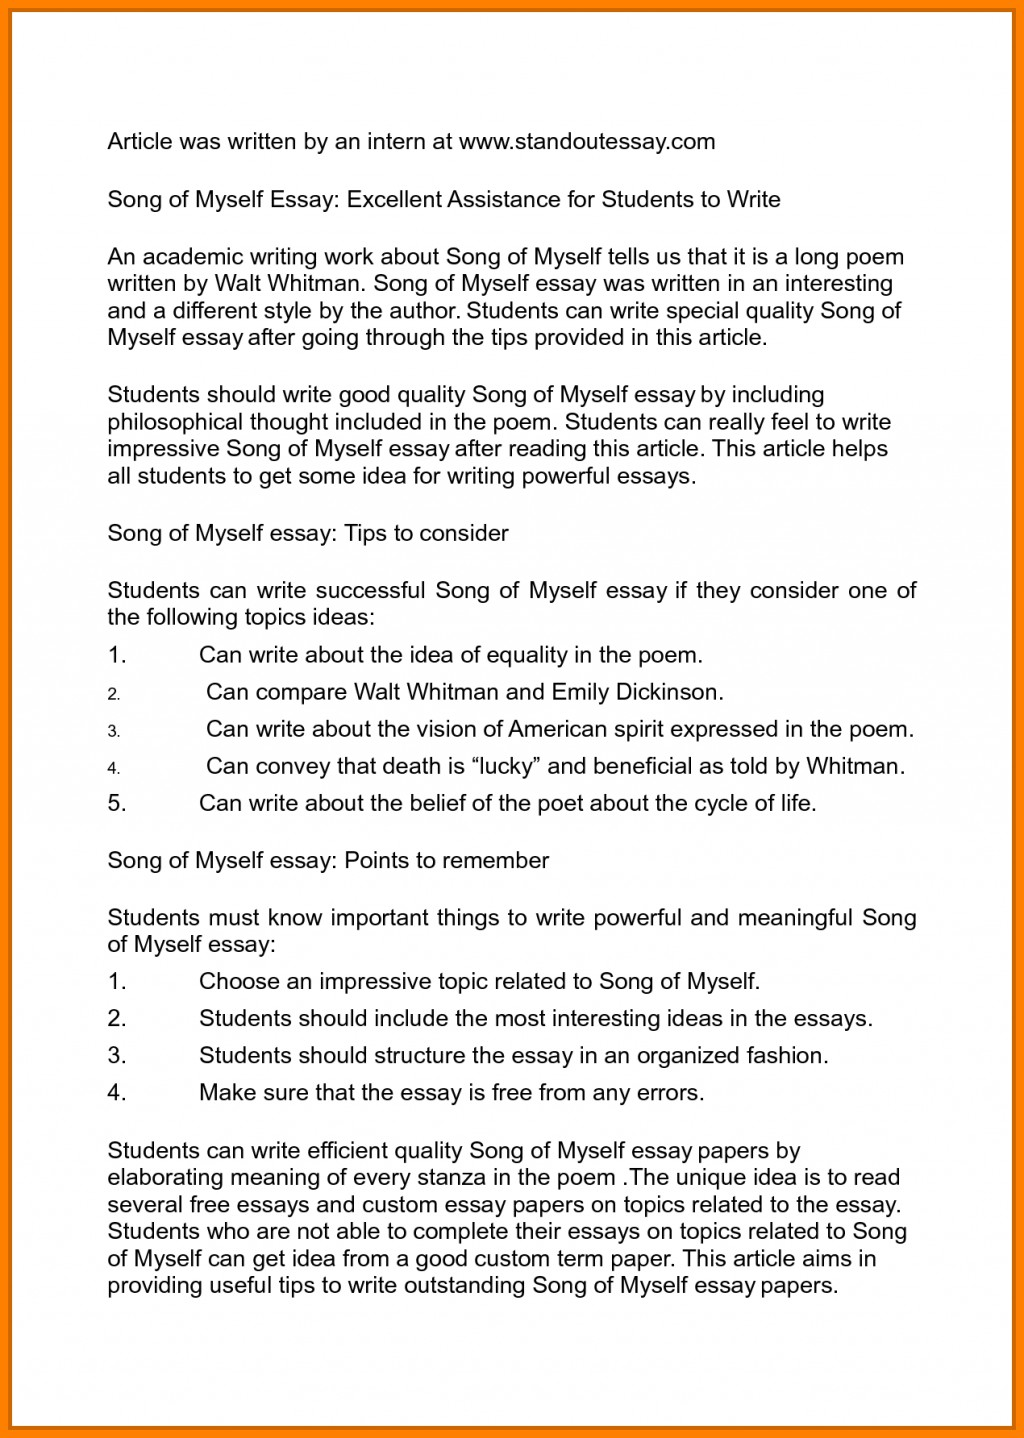 006 Essay Example Autobiography On Myself How To Write An Awful About Of Yourself Pdf Tagalog Large